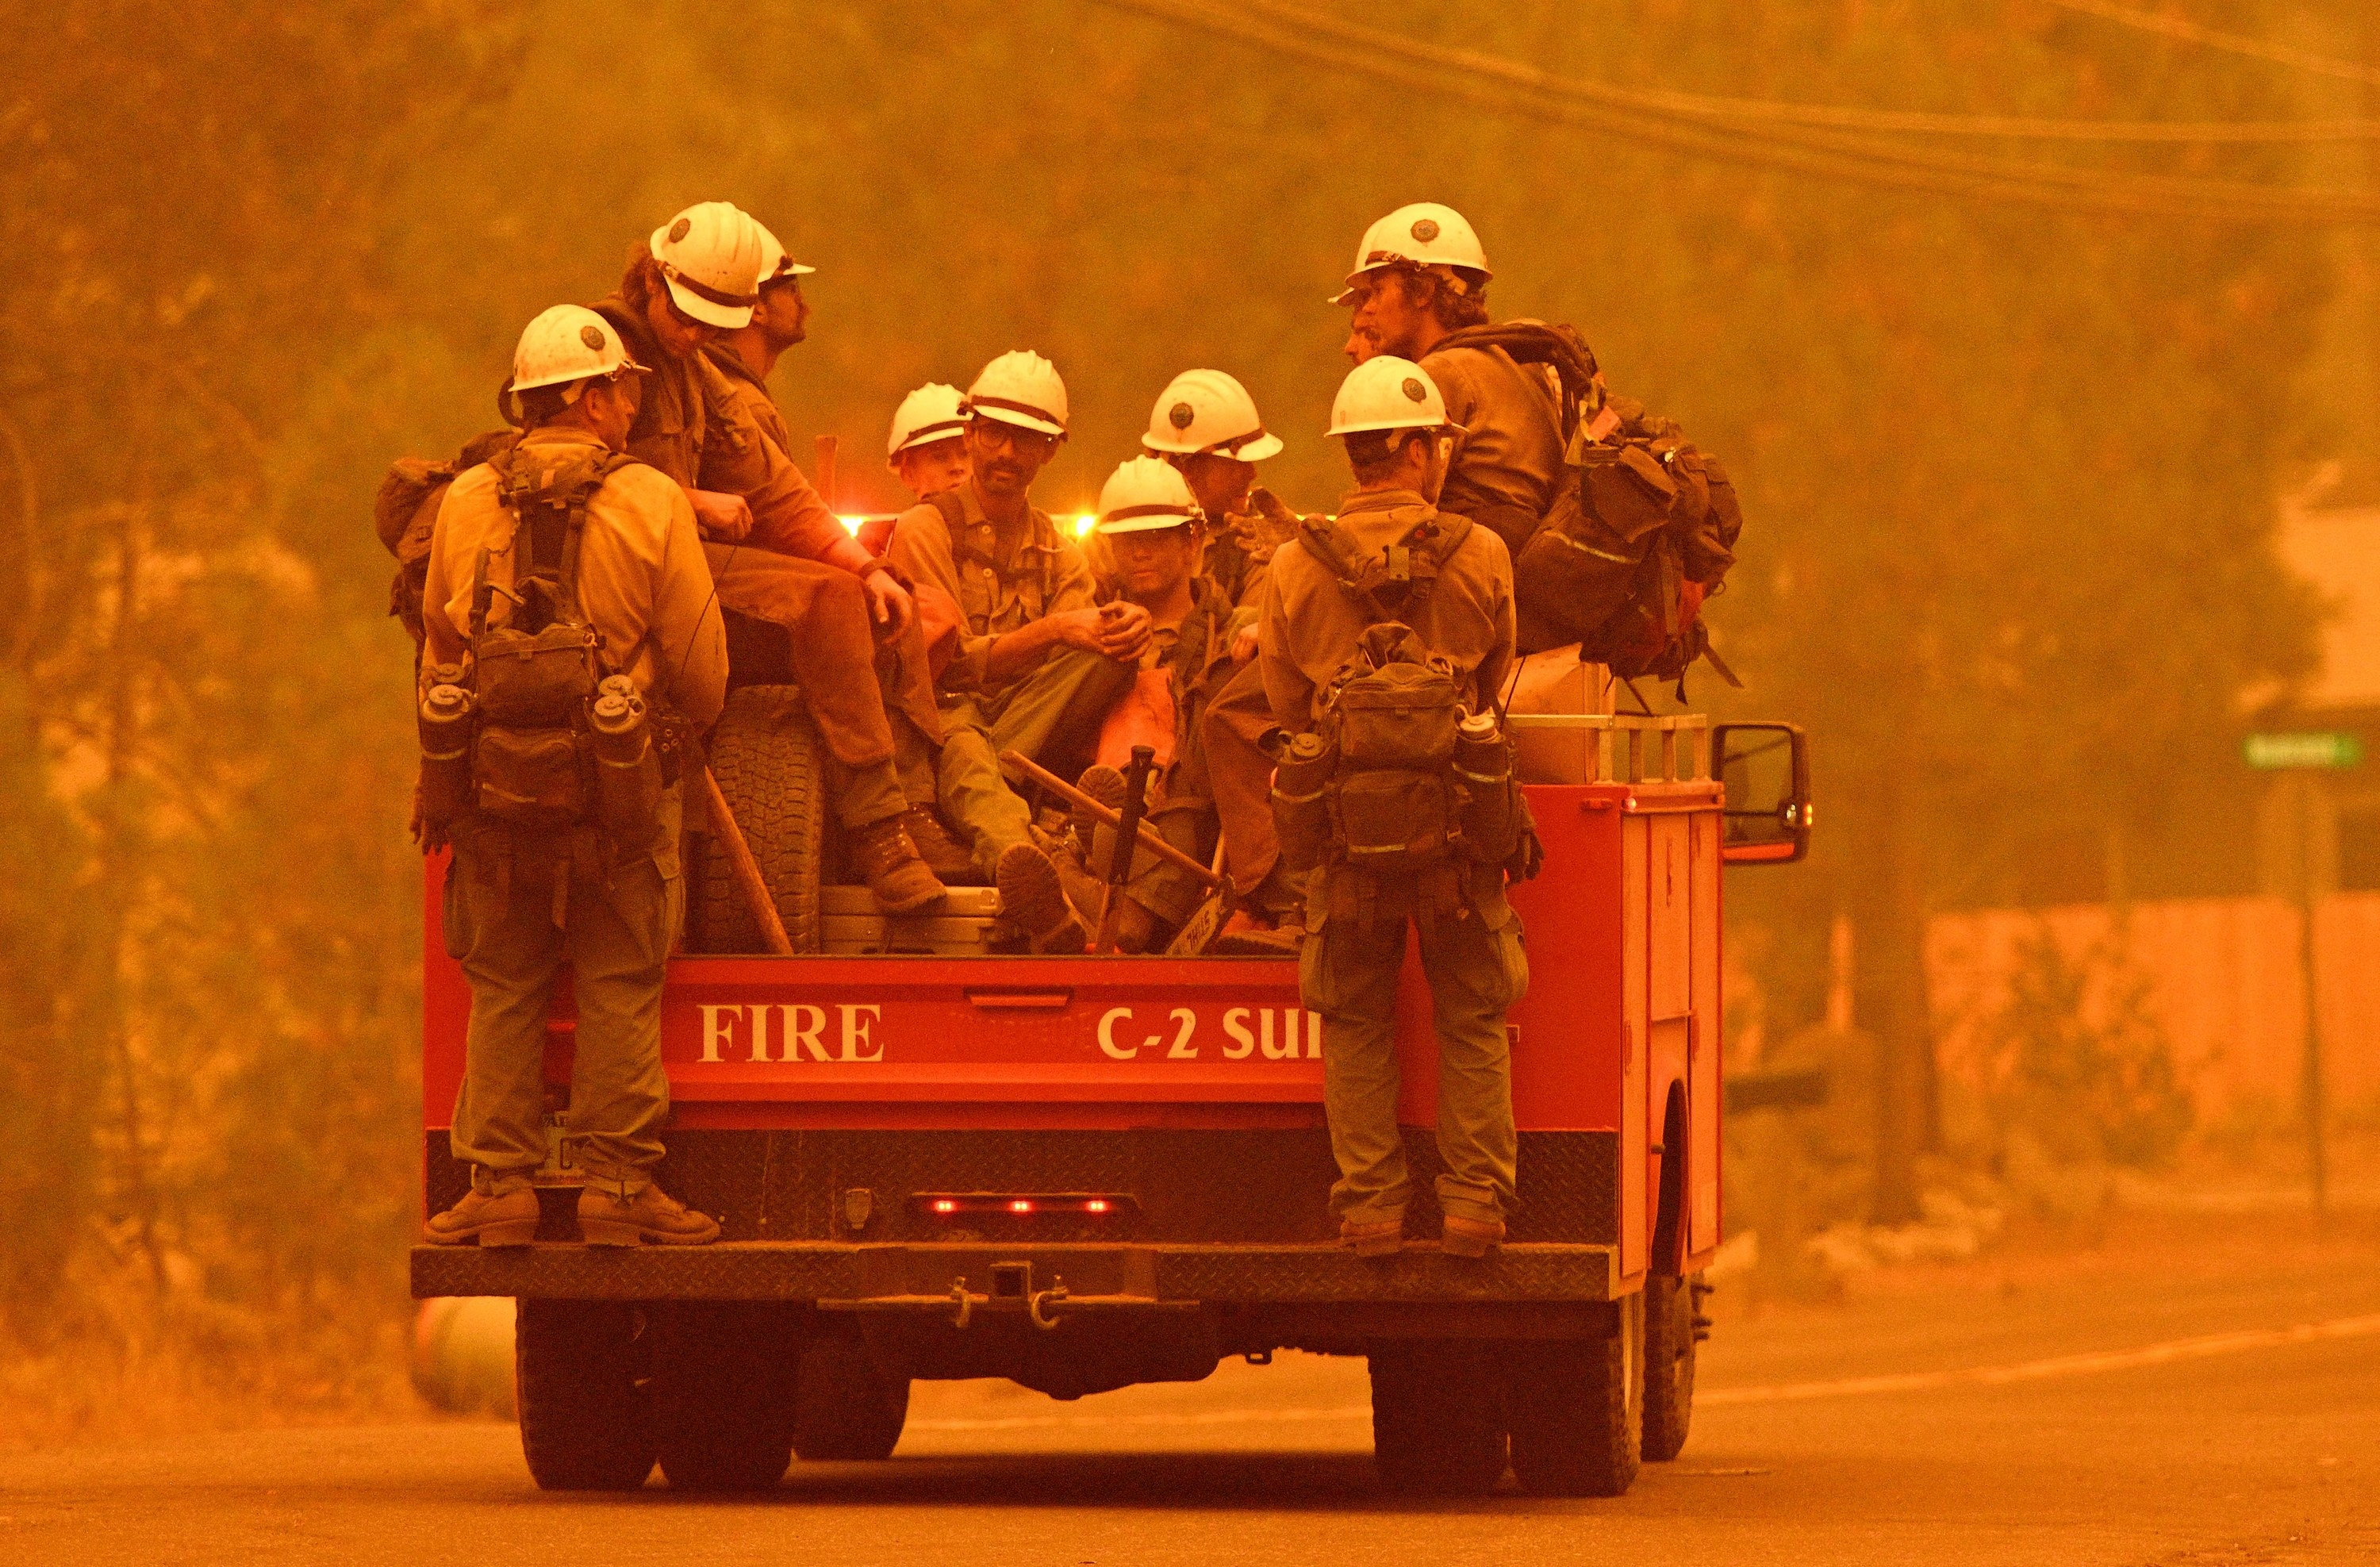 Ten firefighters in uniform sit and stand on a moving truck under a hazy sky